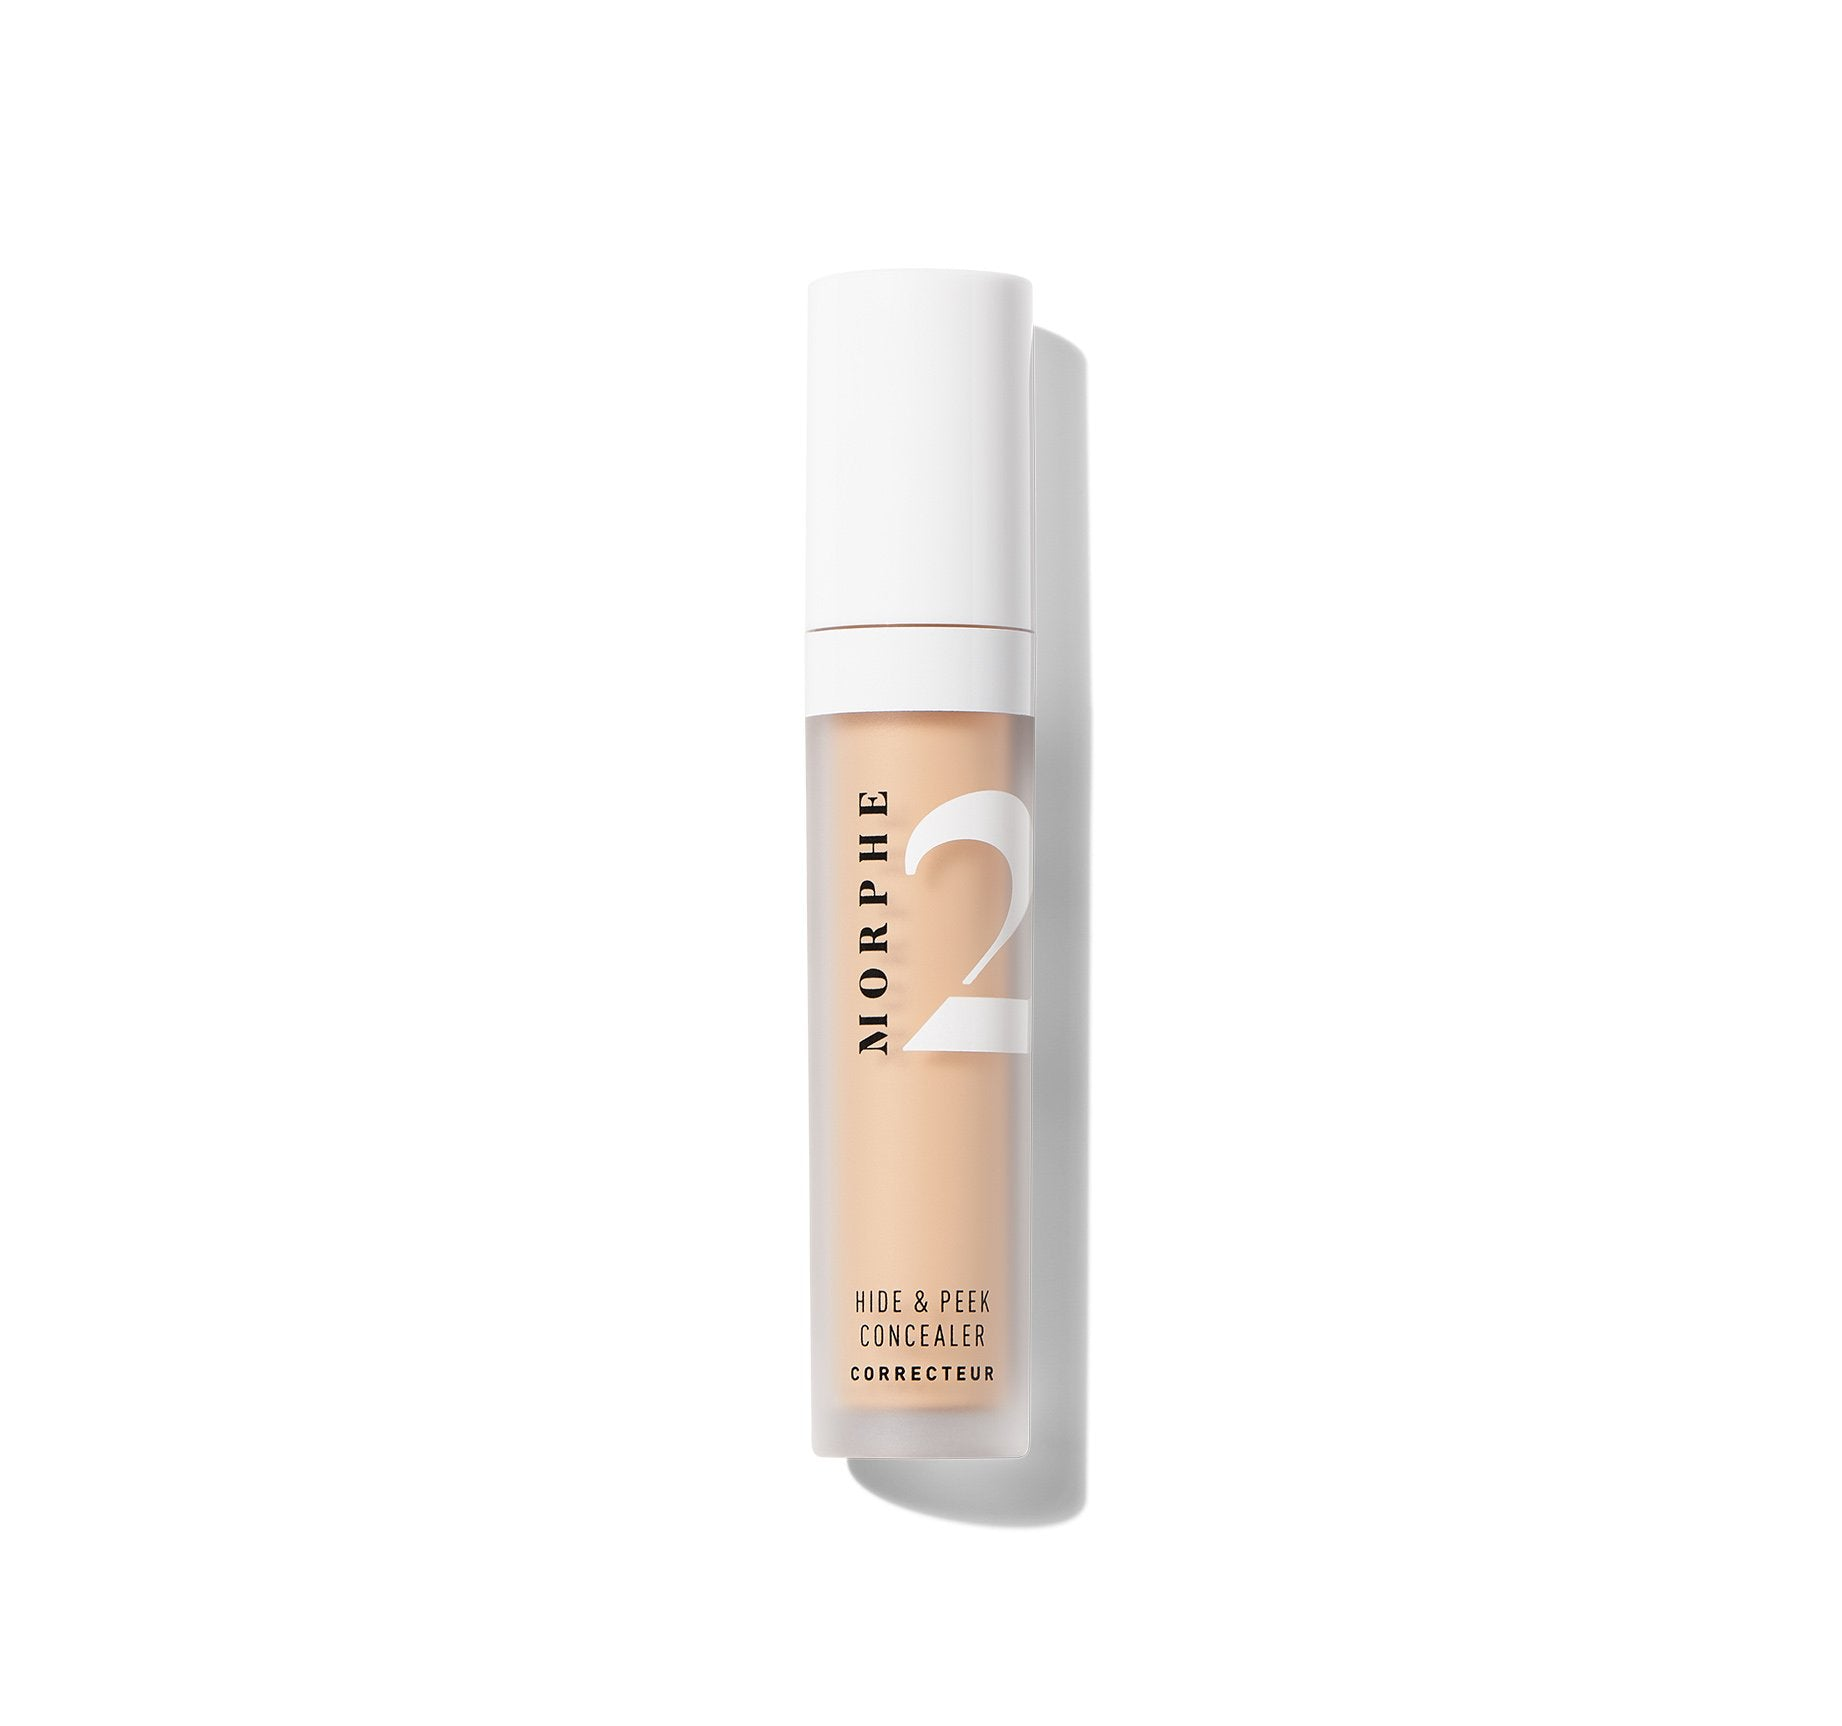 HIDE & PEEK CONCEALER - PEEK OF BUFF, view larger image